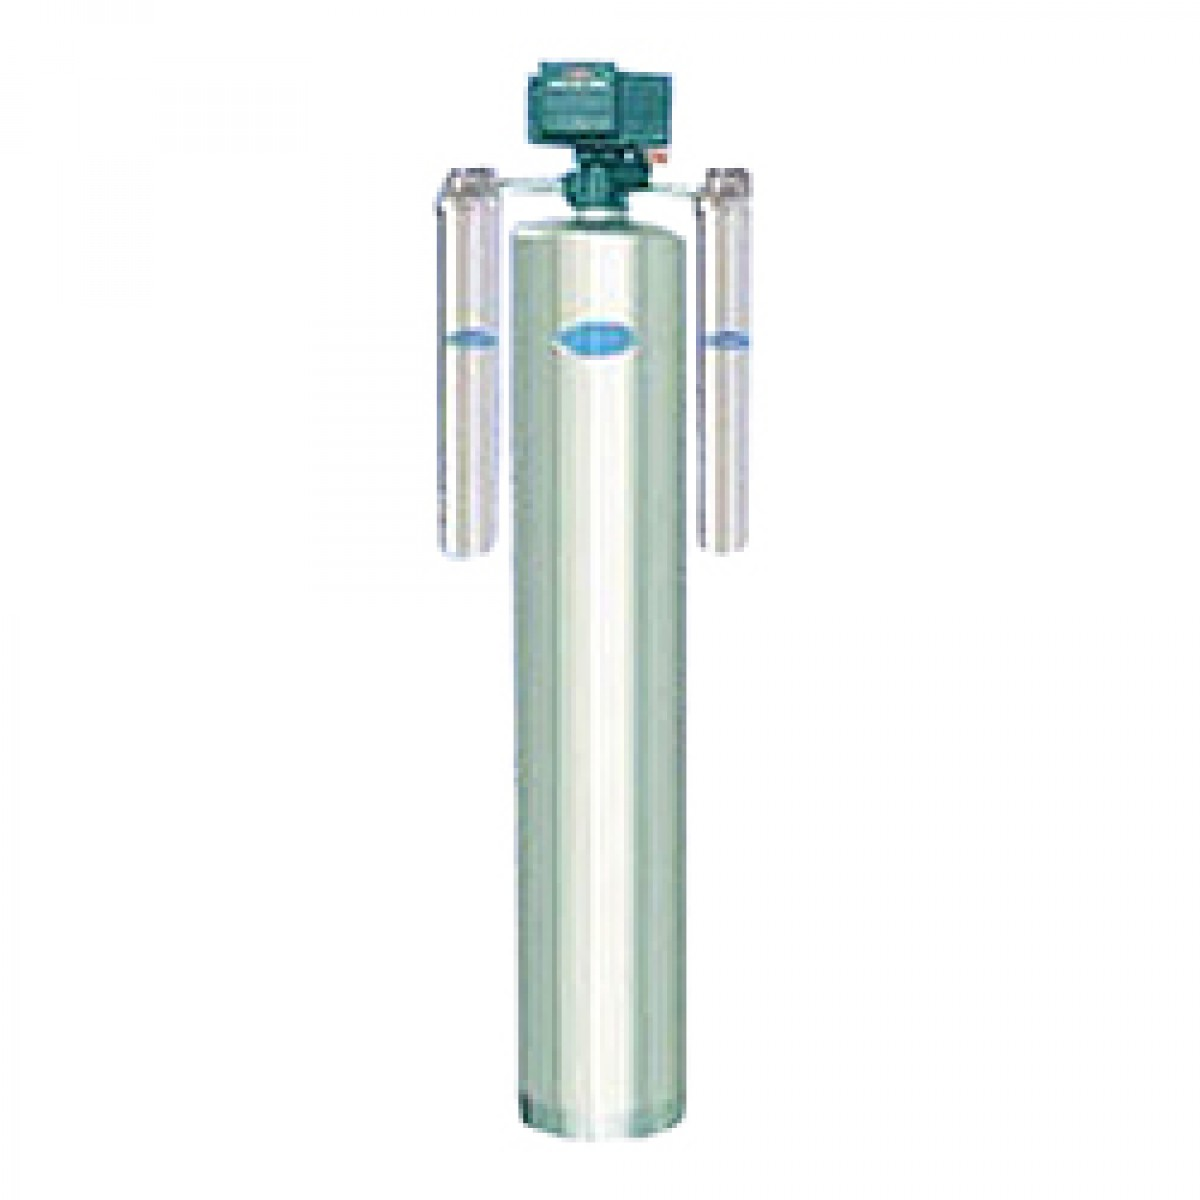 Crystal quest whole house automatic backwash filter